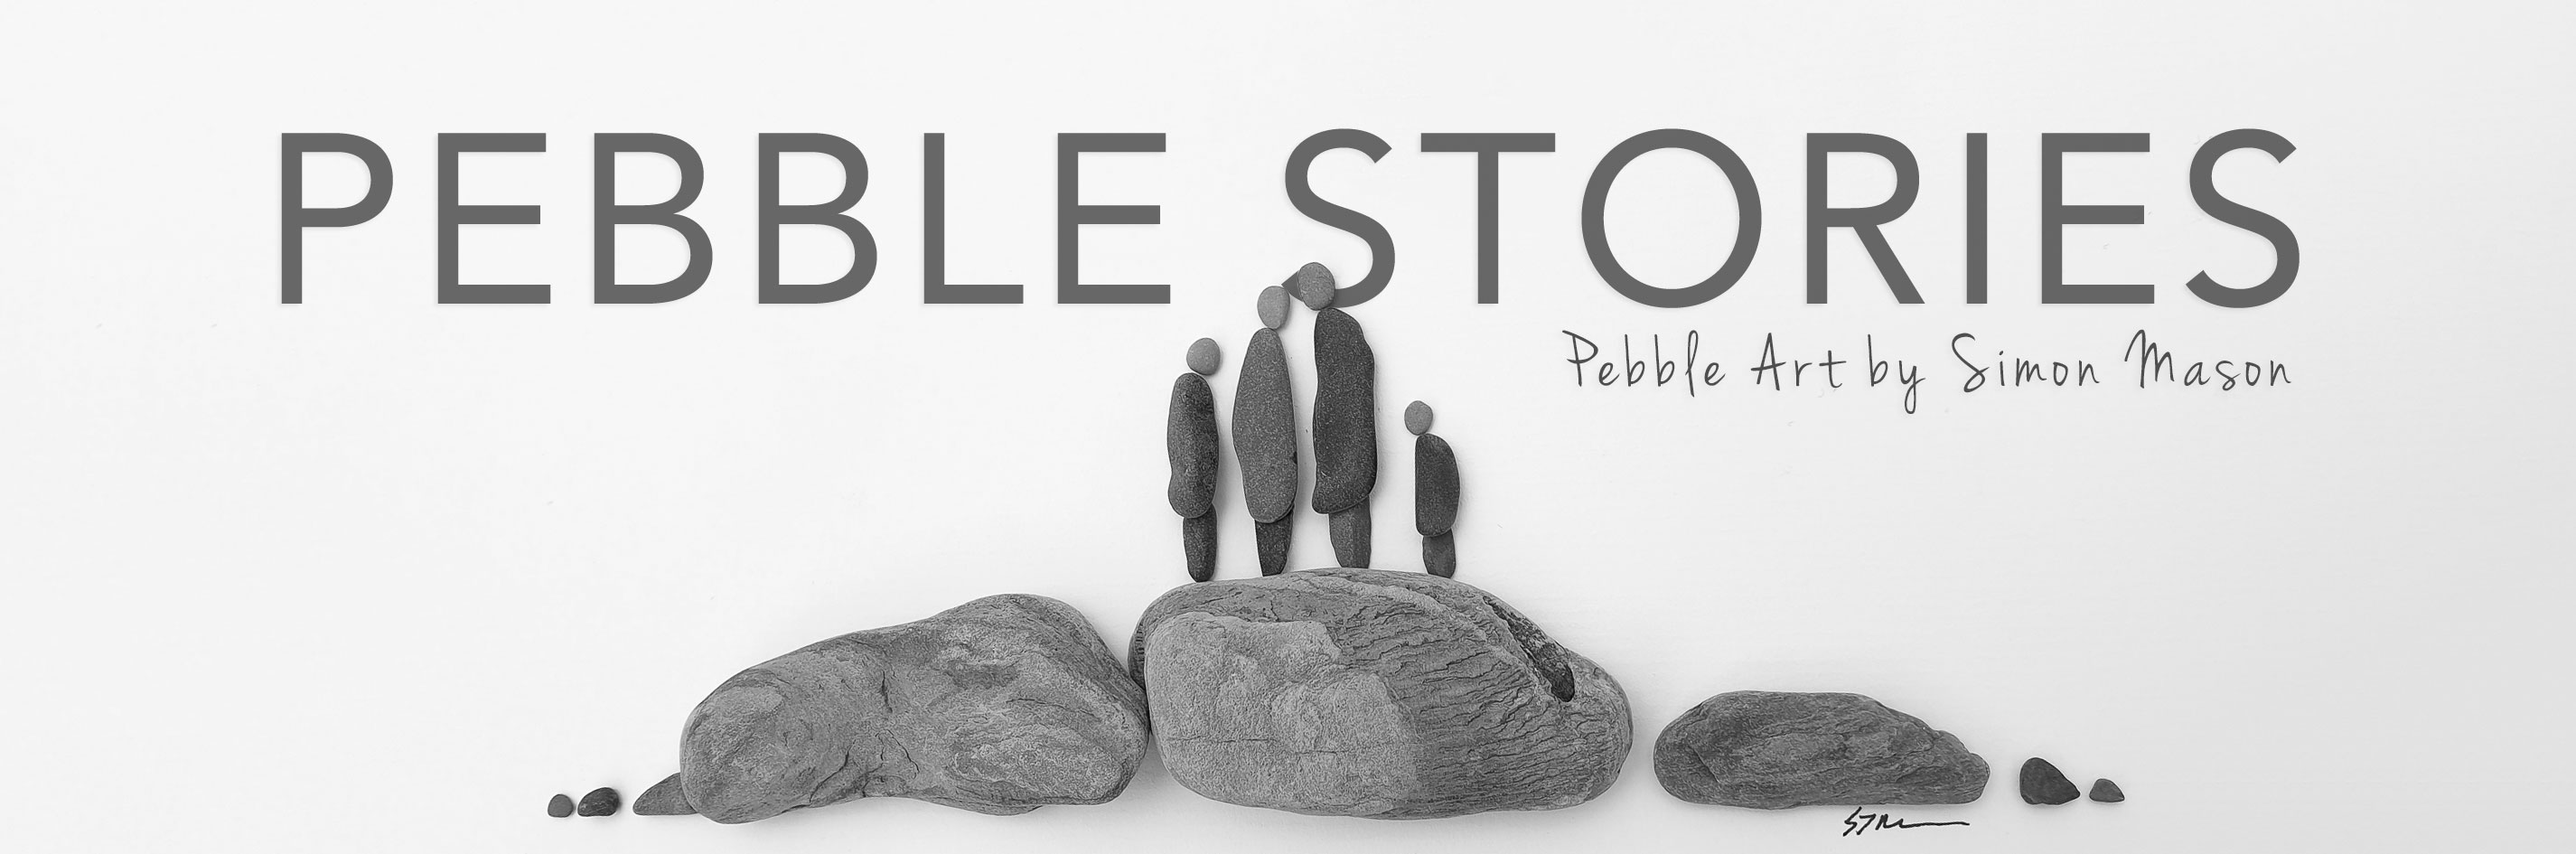 Pebble Stories